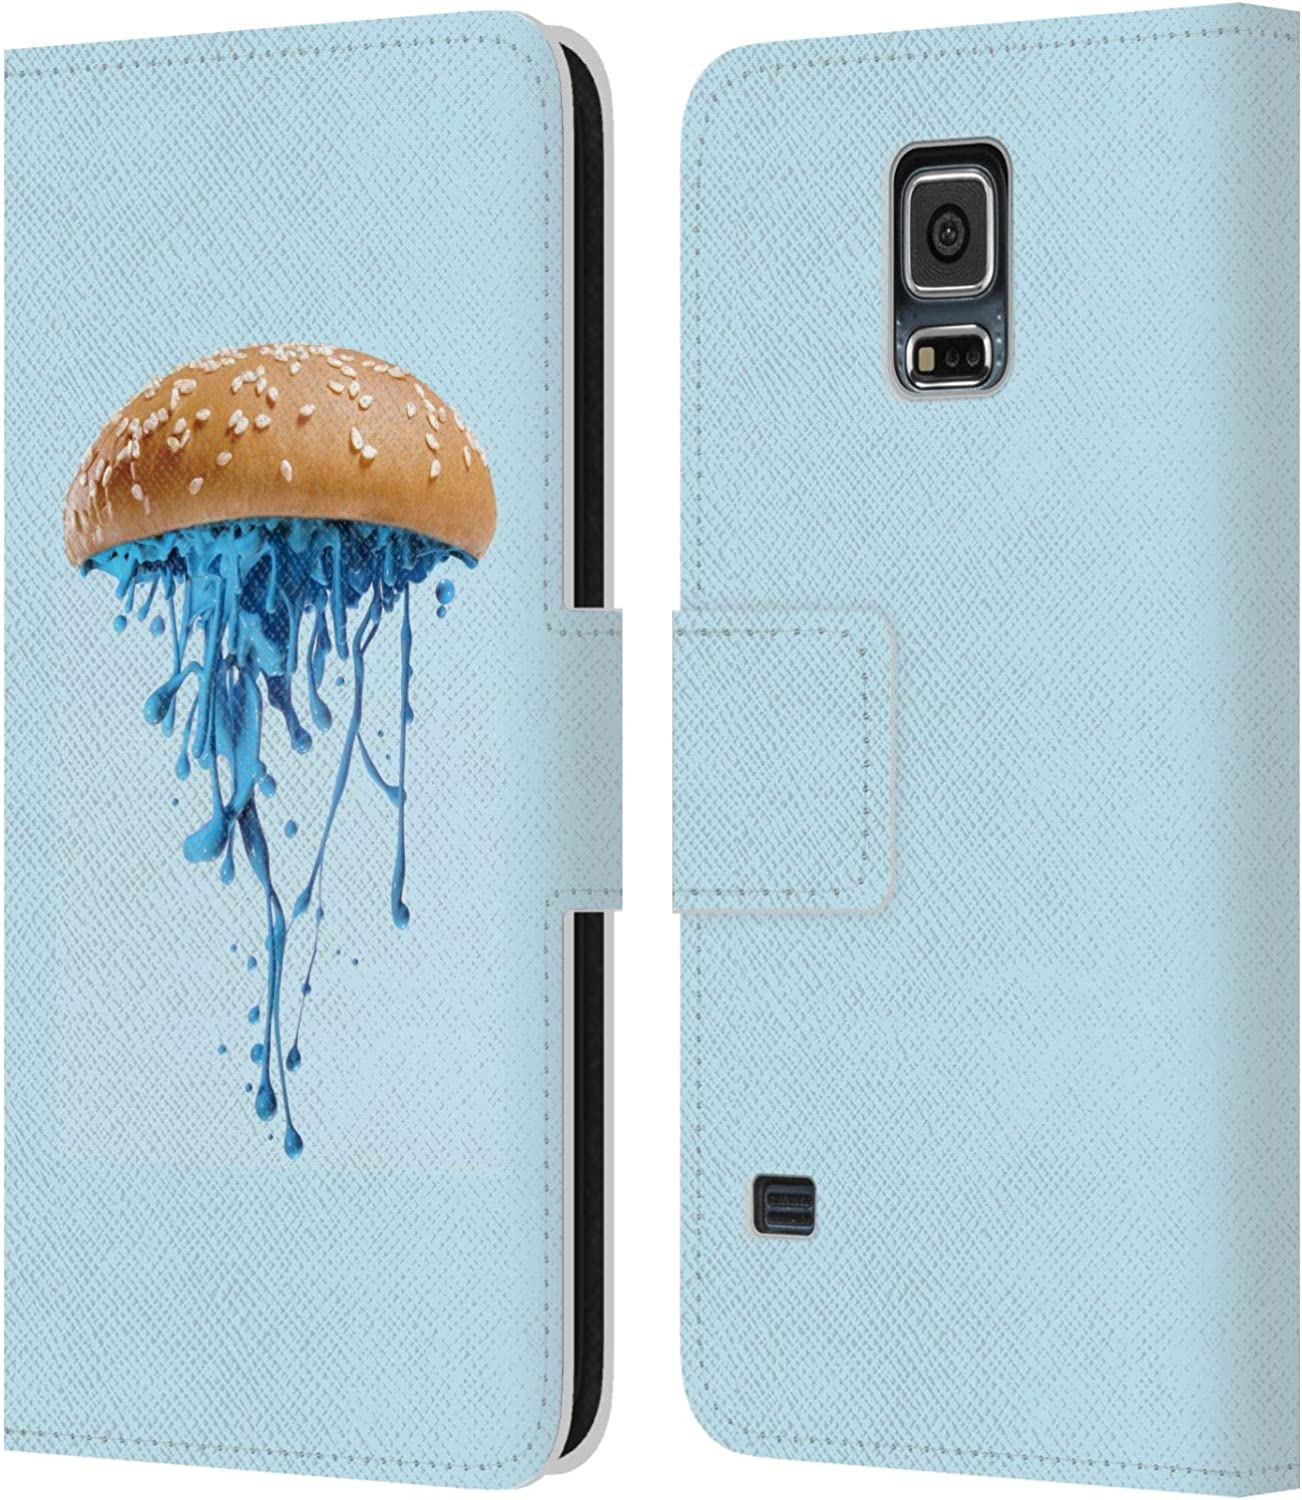 Head Case Designs Officially Licensed Paul Fuentes Jelly Burger Junk Food Leather Book Wallet Case Cover Compatible with Samsung Galaxy S5 / S5 Neo